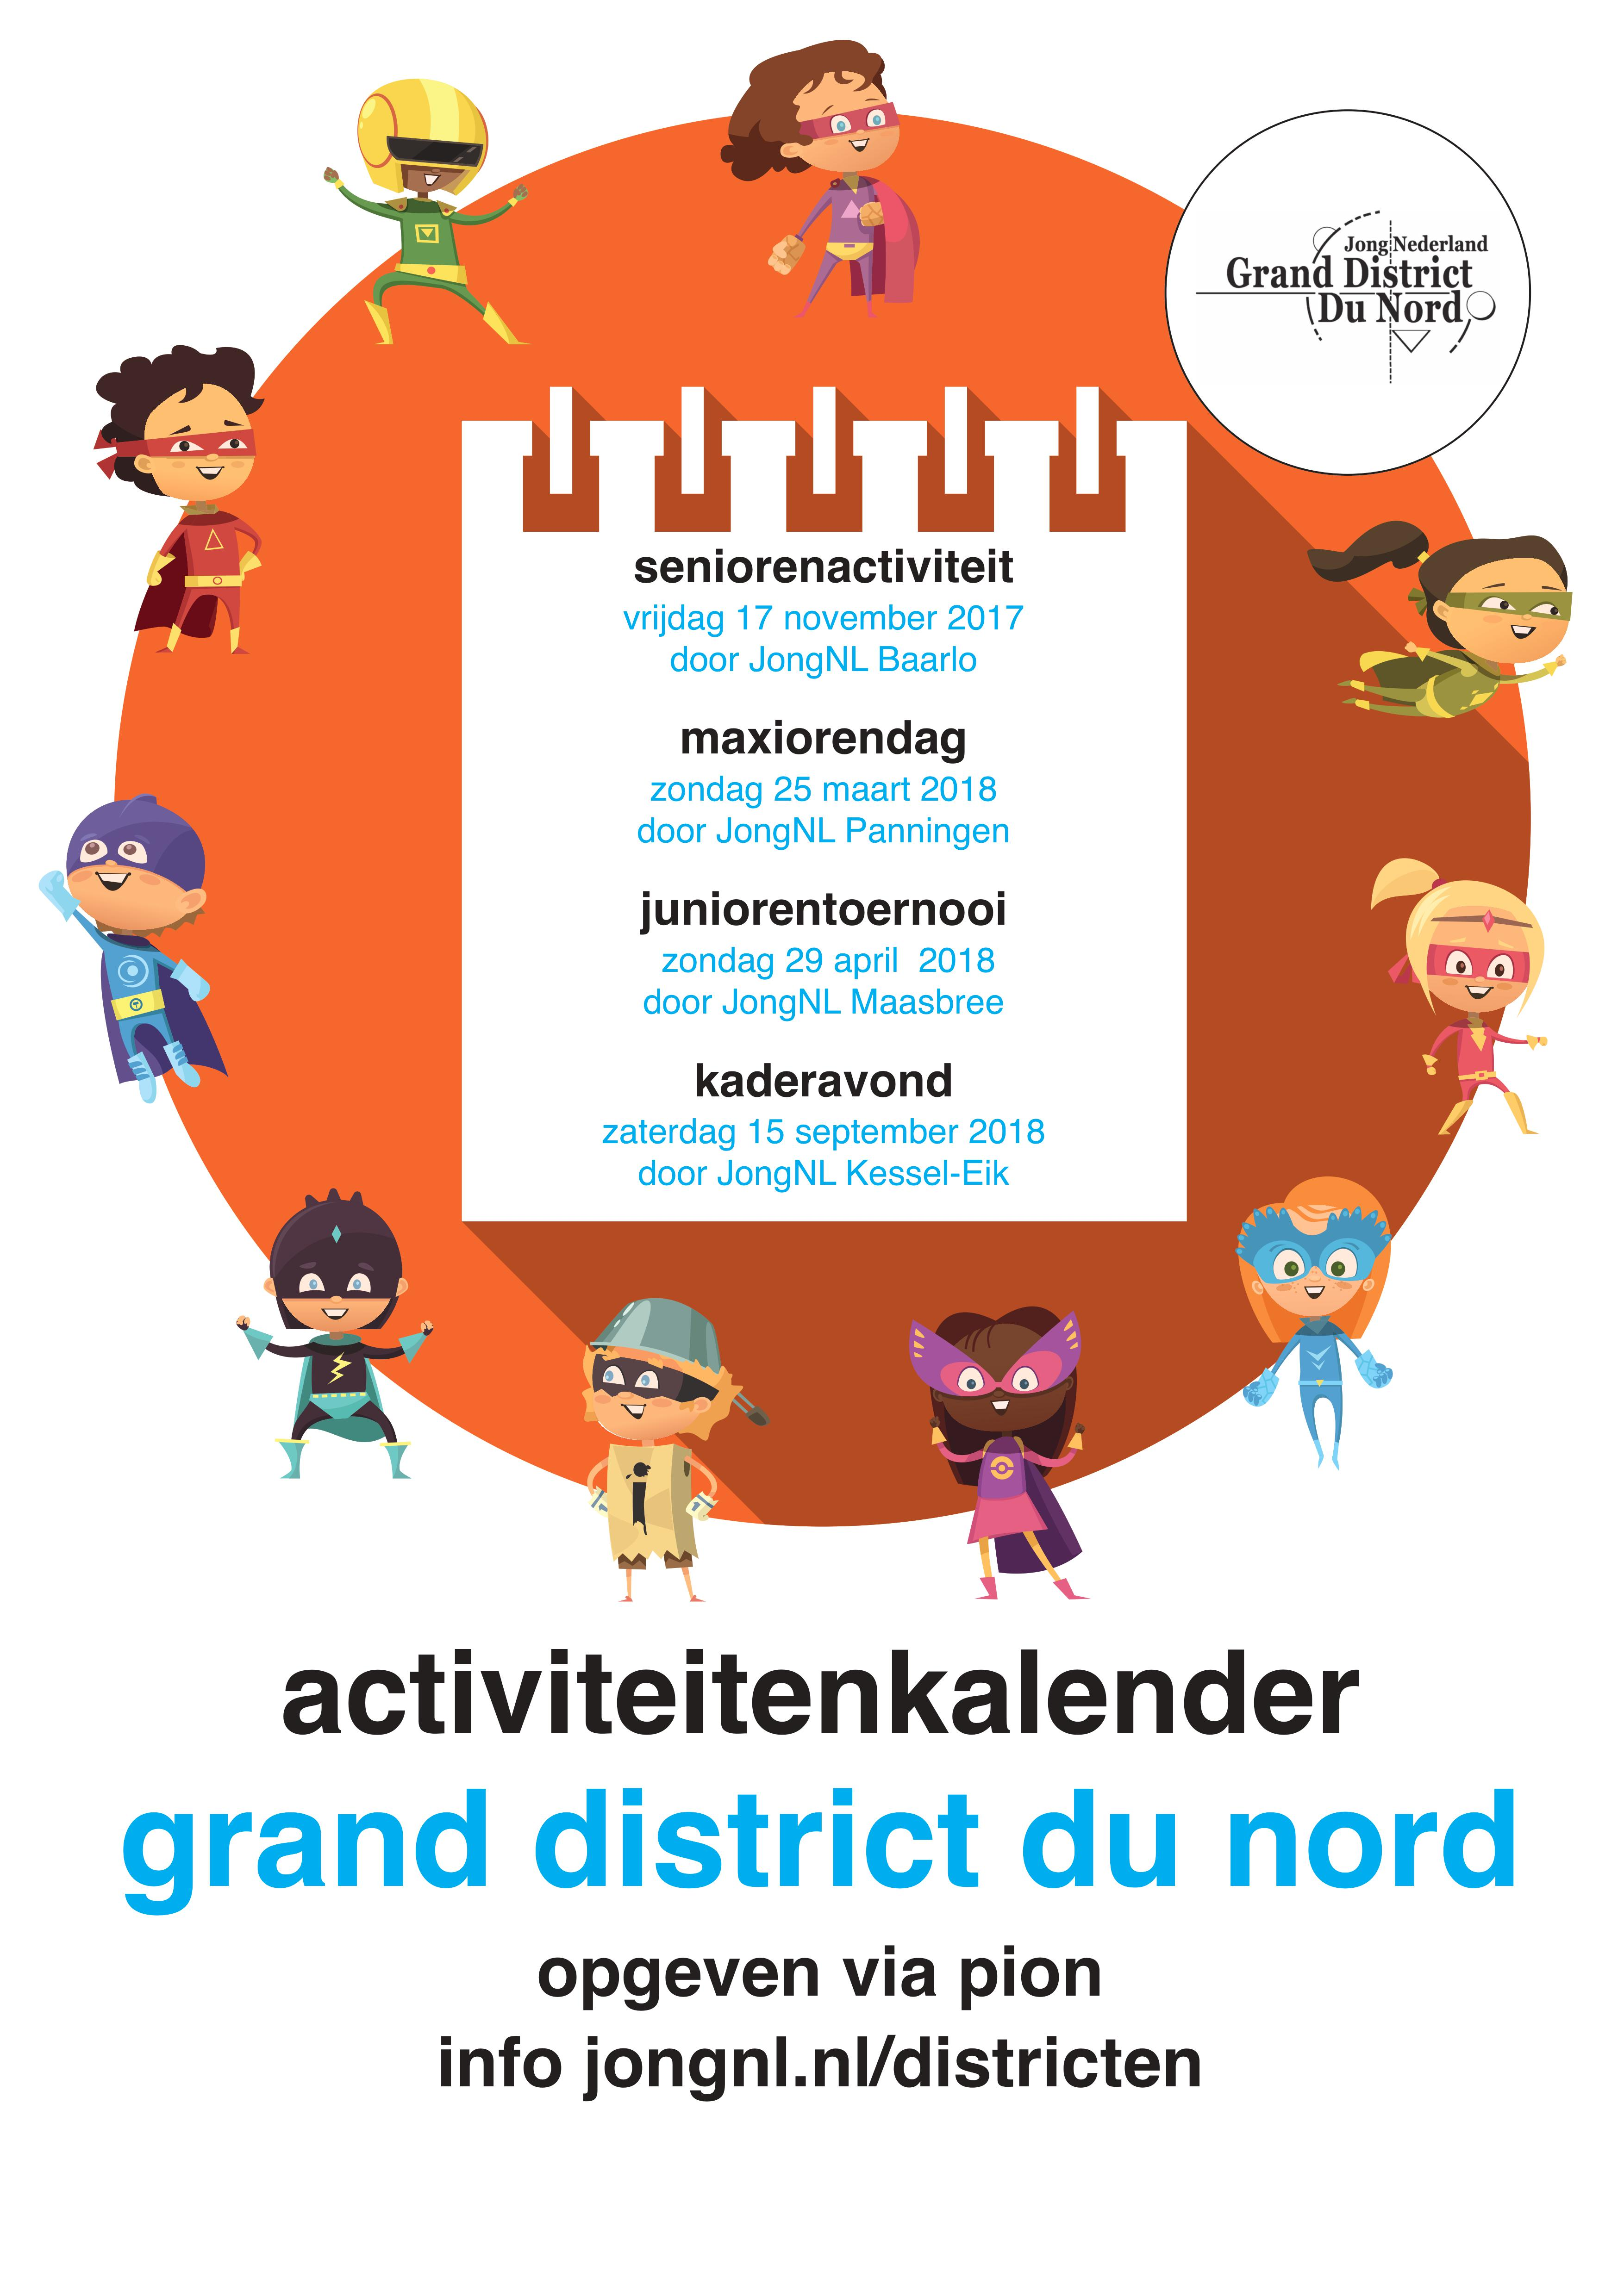 poster data districtsactiviteiten 2017 2018